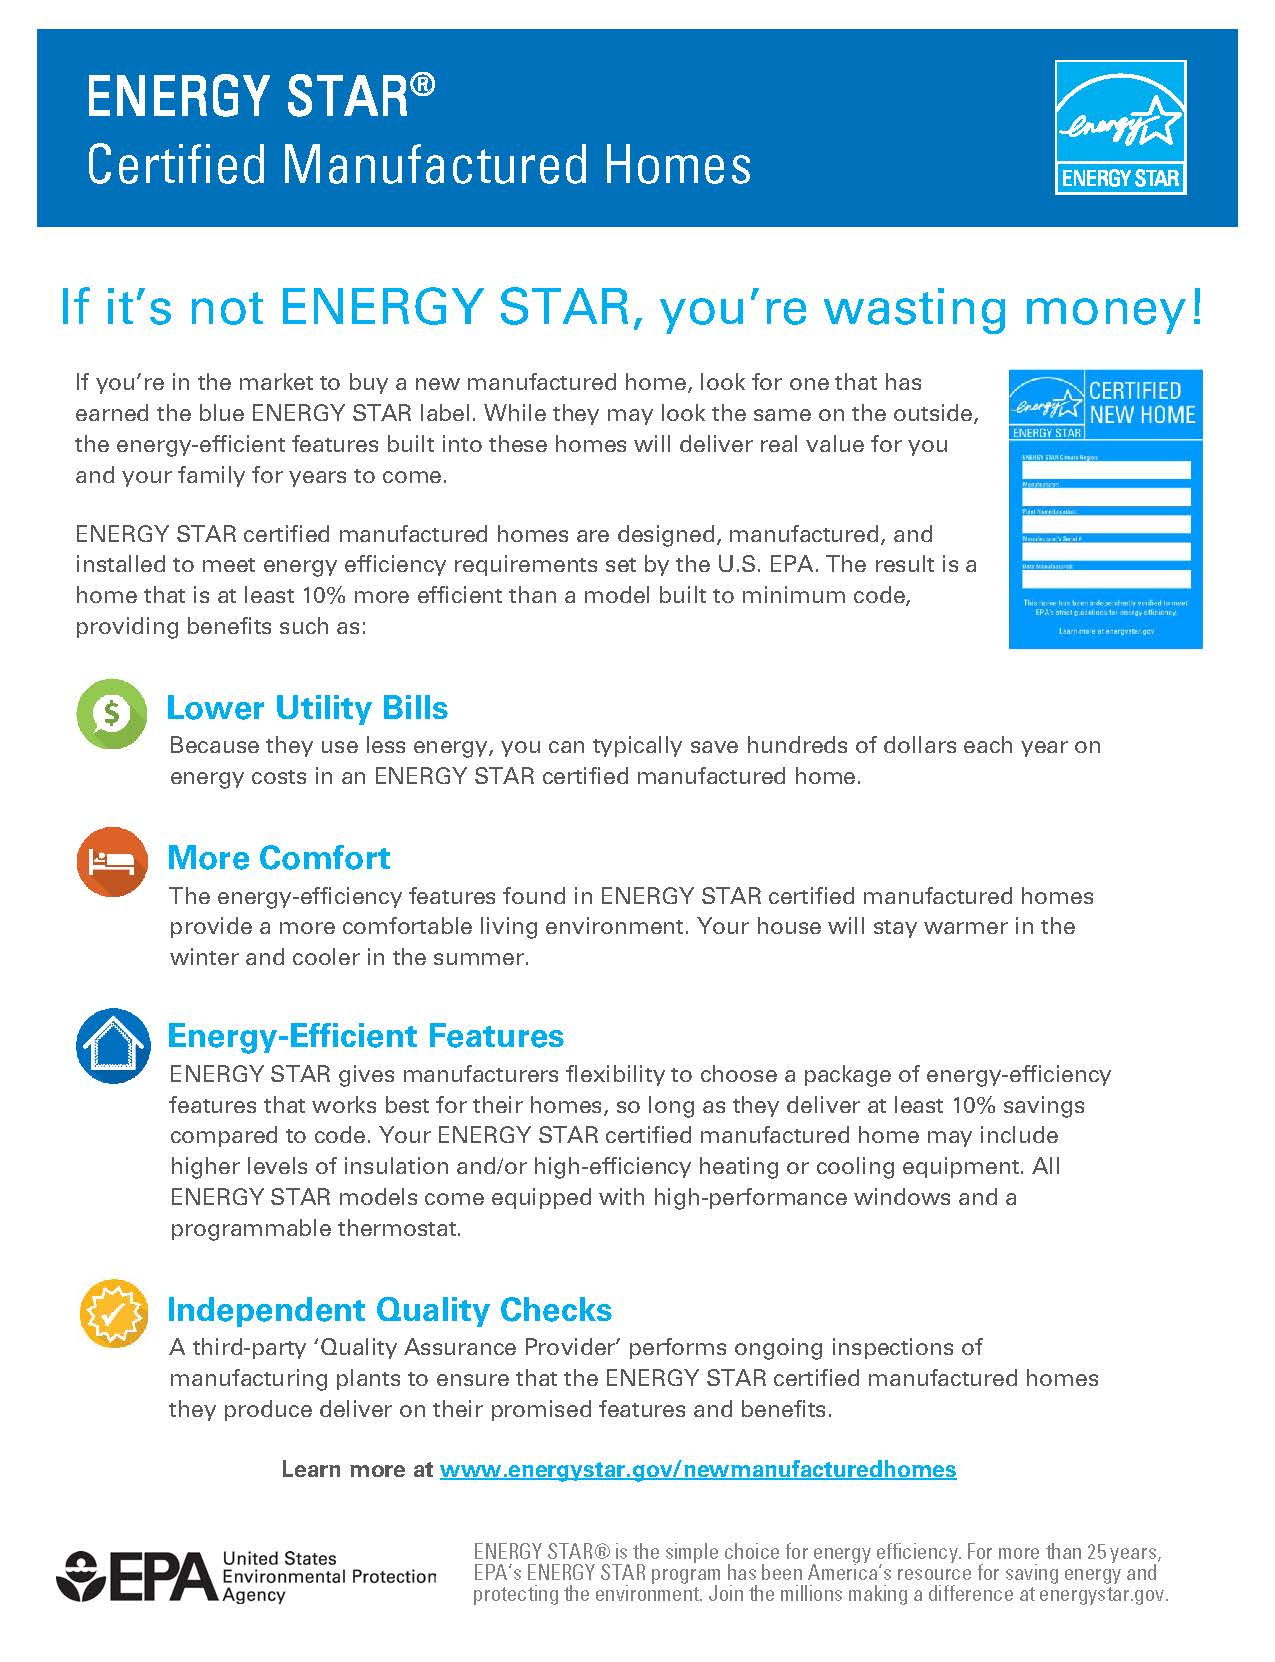 ENERGY STAR Certified Manufactured Homes Flyer